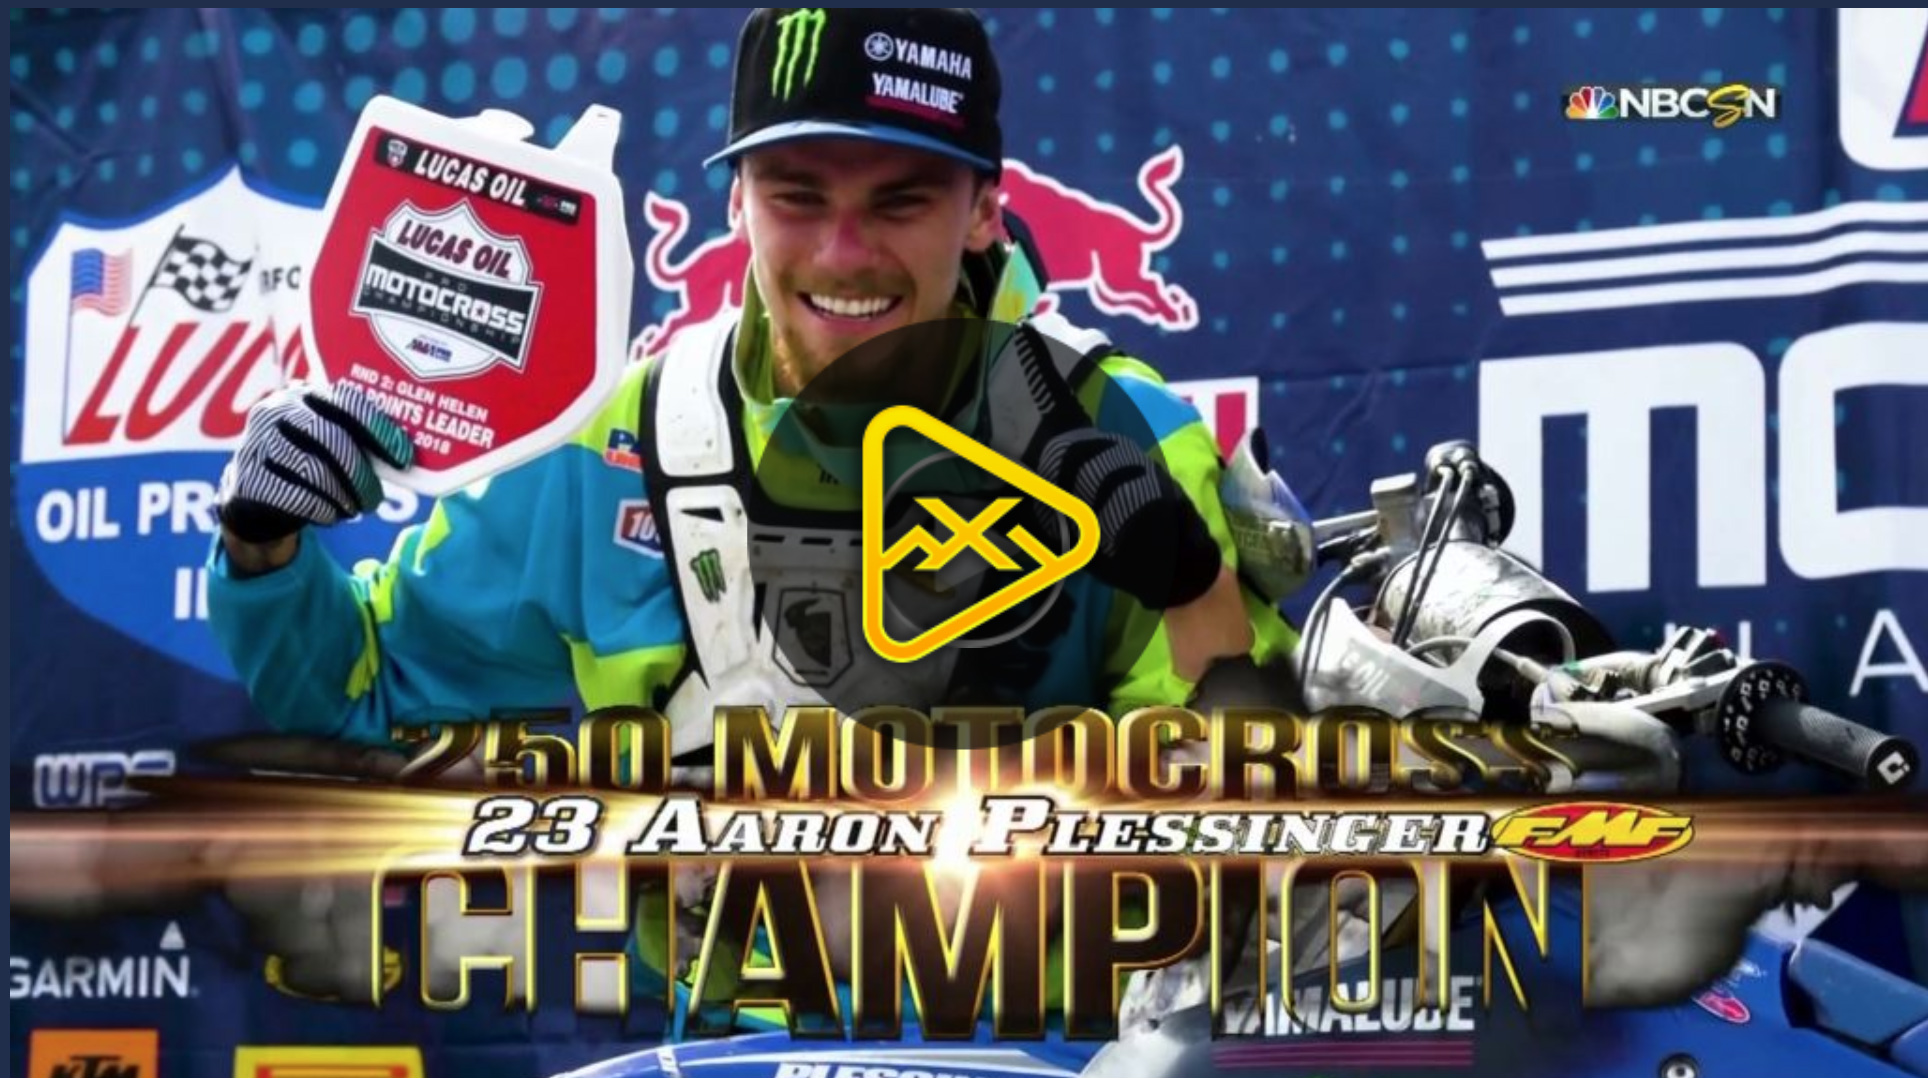 Aaron Plessinger's Road to the 250 Championship